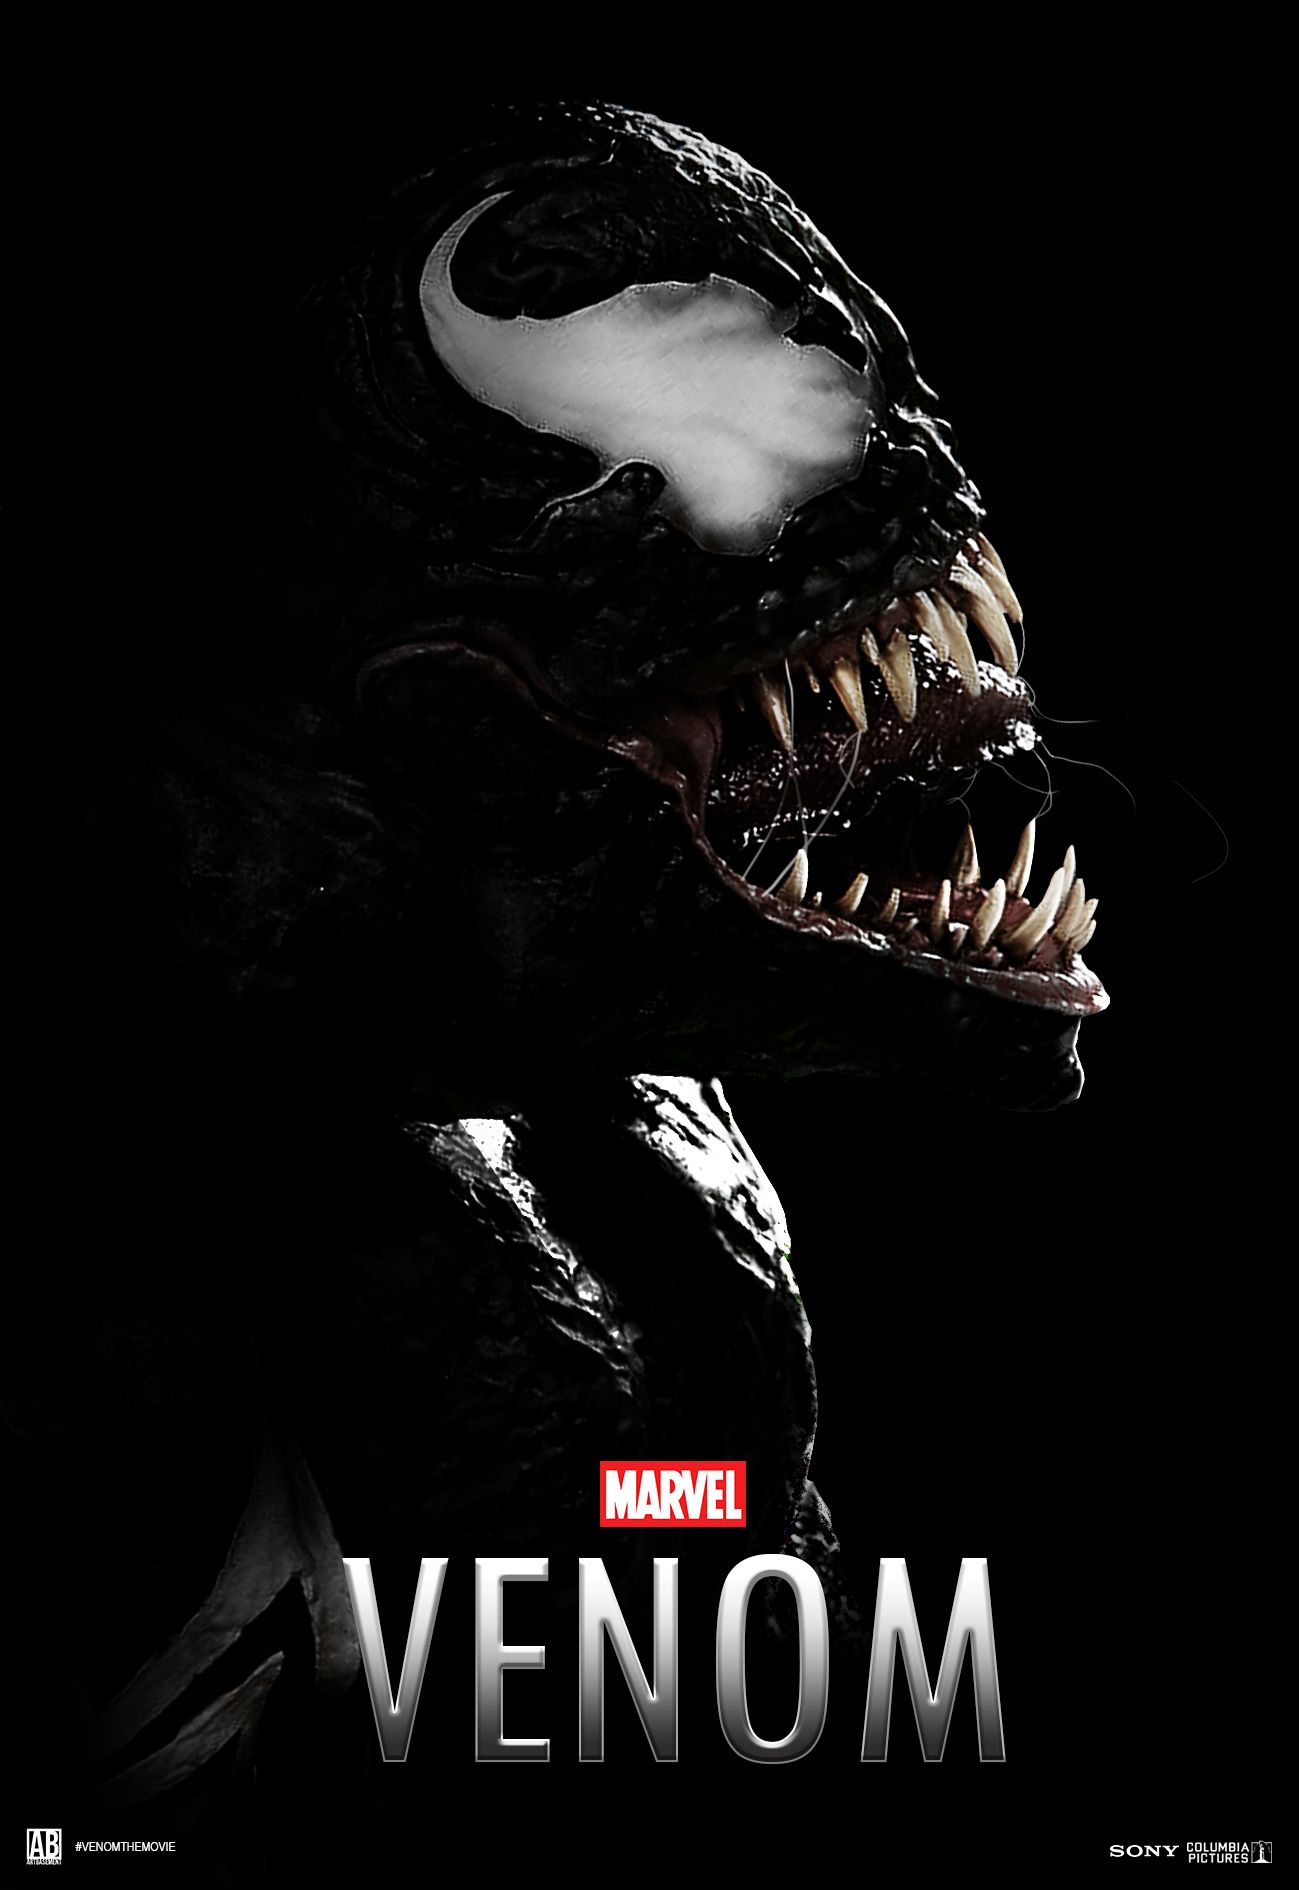 2018 movie posters